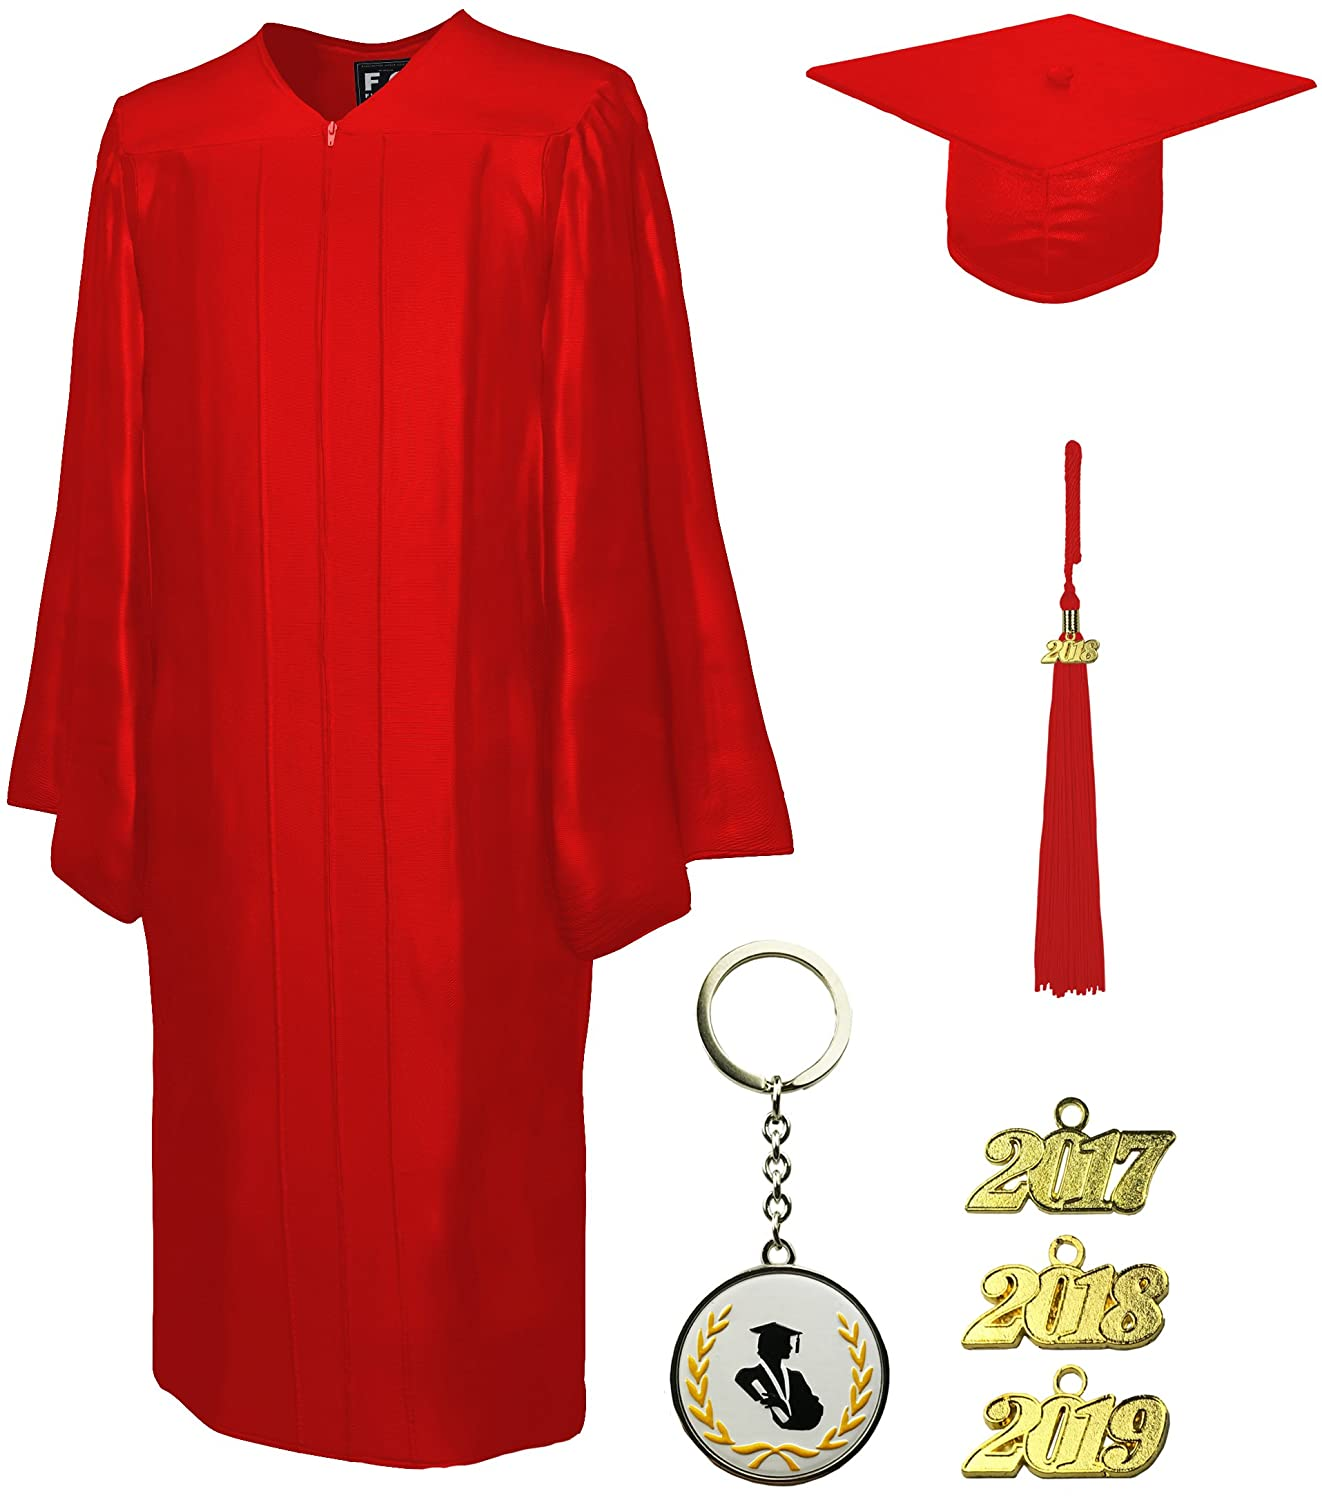 Graduation Cap and Gown and Tassel, Shiny, FIT4GRAD